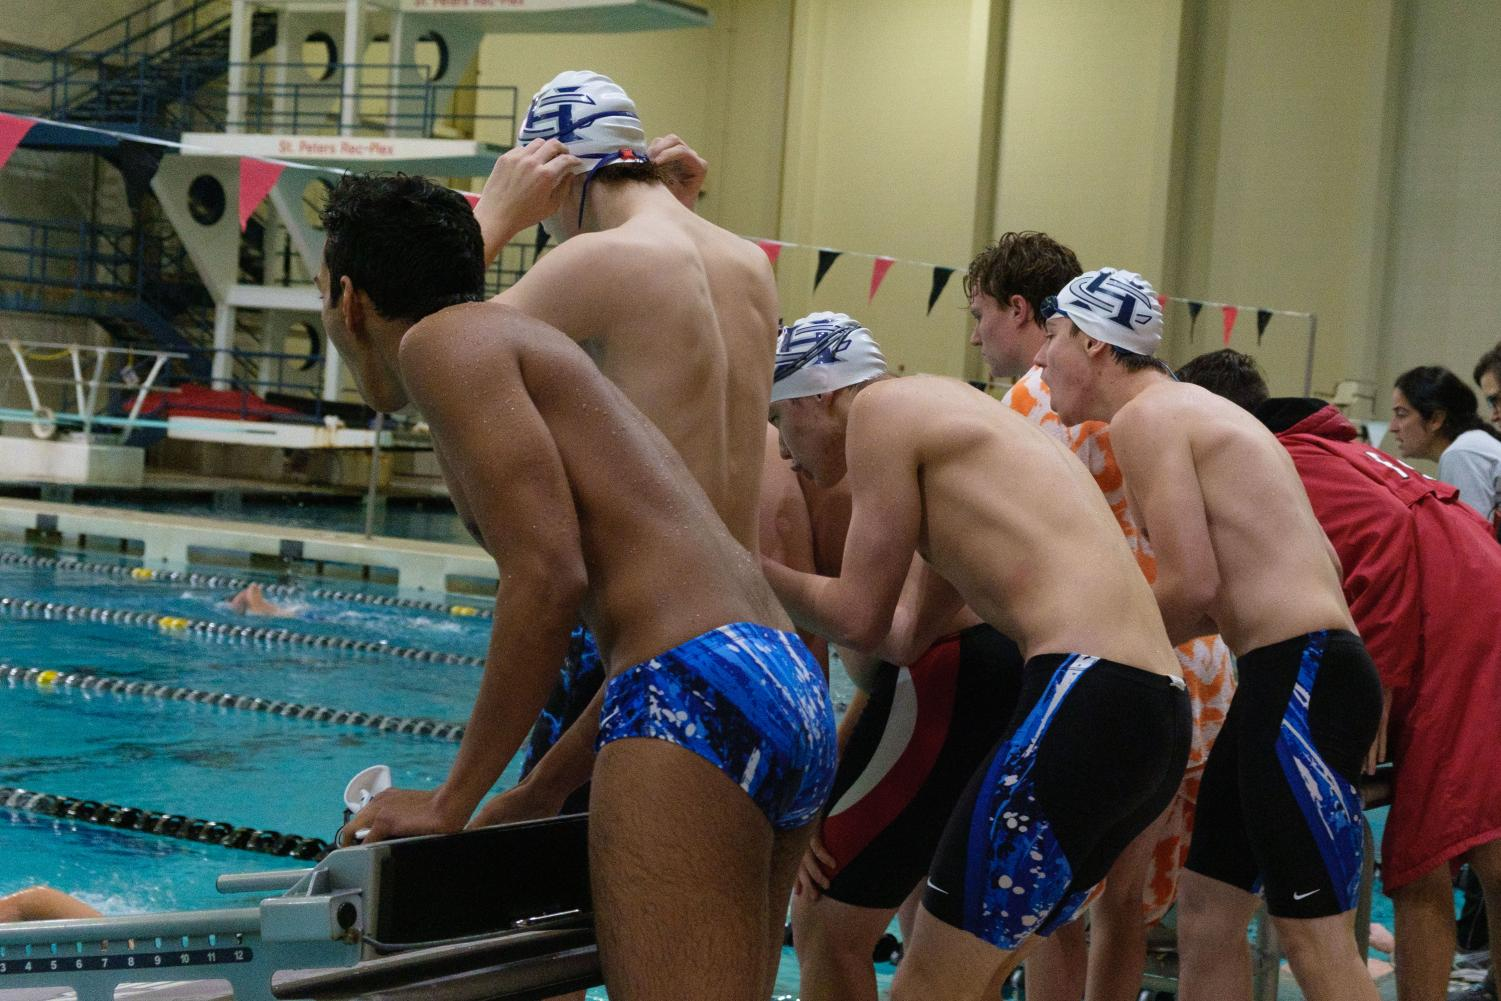 GOING ALL THE WAY - FHC Swimmers cheer on their fellow teammate as they swim their event. The team all encourages each other to swim their best, regardless of the outcome of the event.